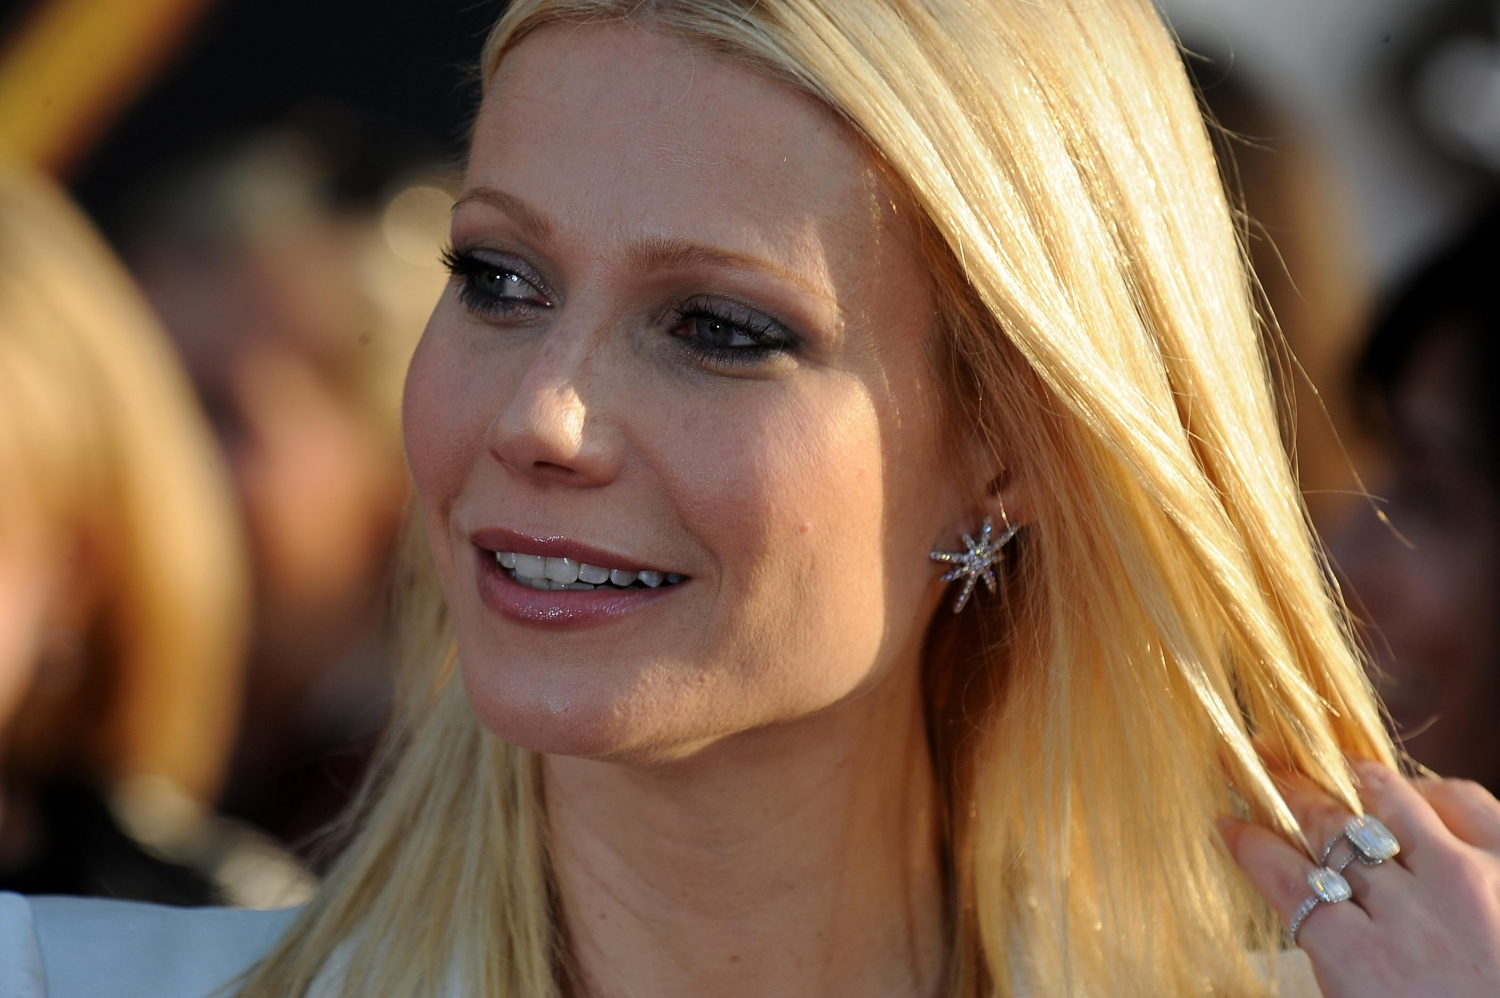 Gwyneth Paltrow's secret wedding had the best guest list ever